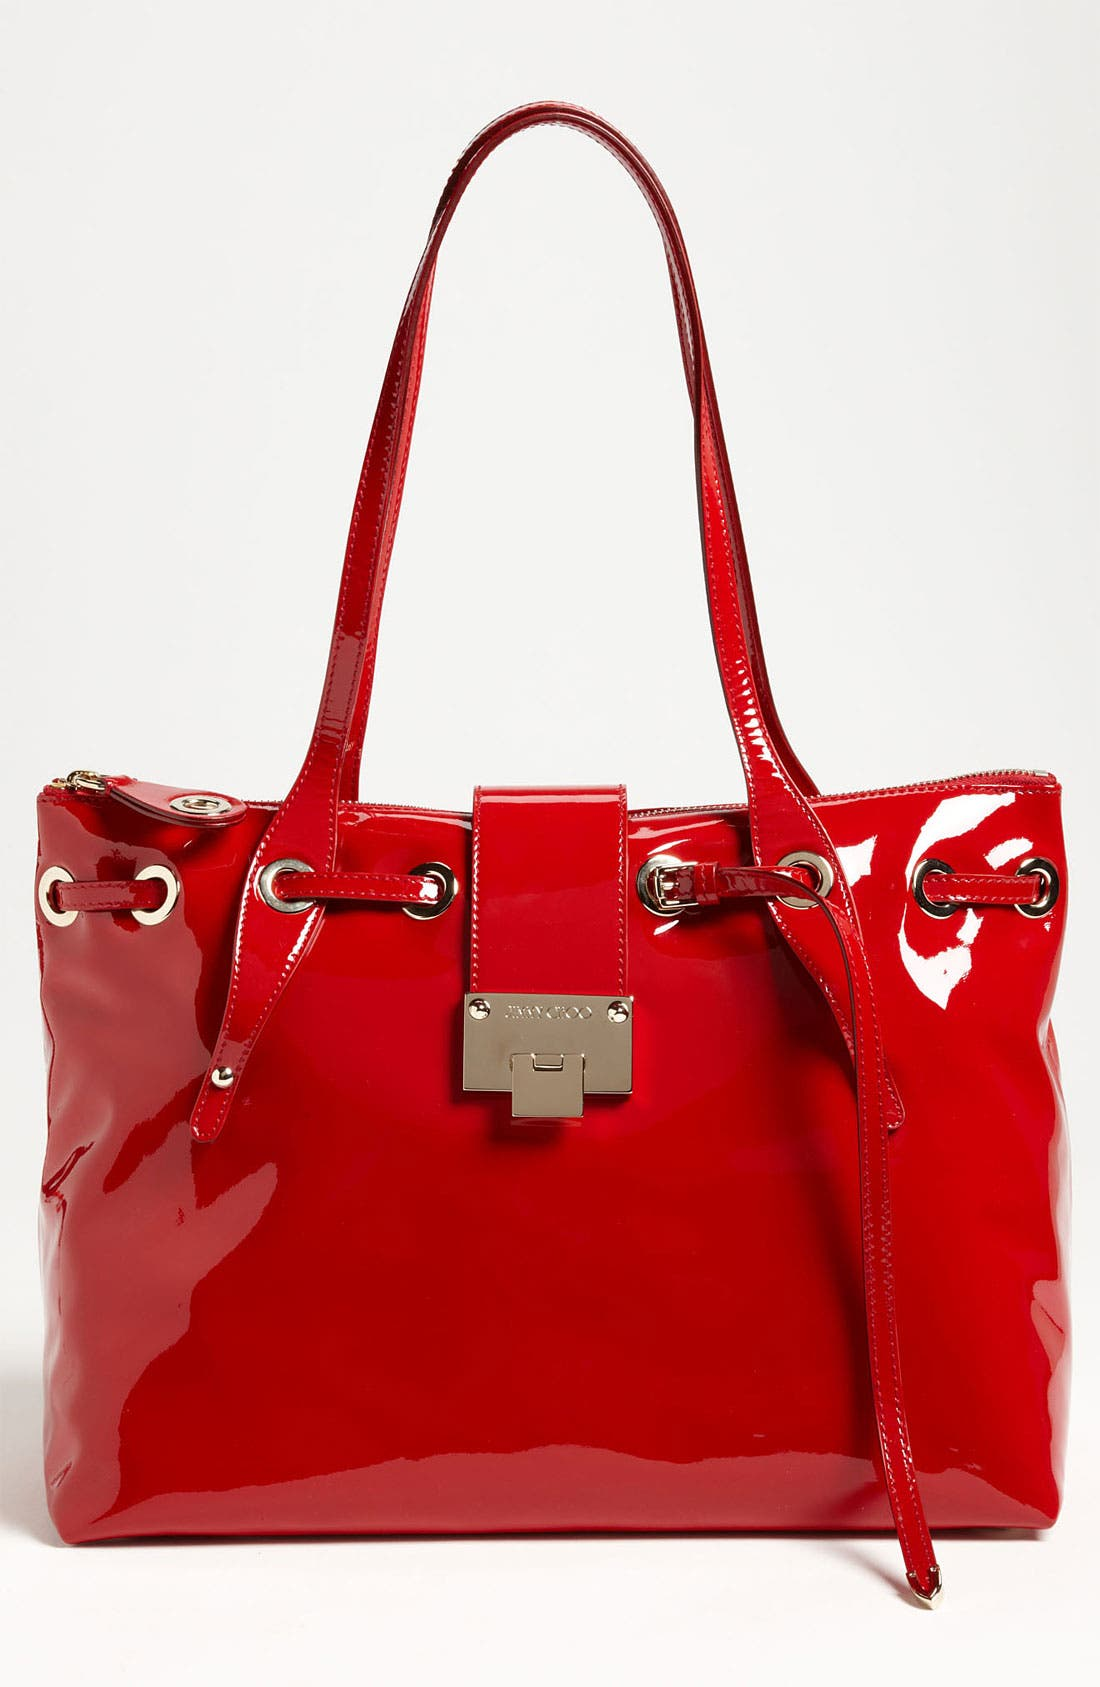 Alternate Image 1 Selected - Jimmy Choo 'Rhea' Patent Leather Tote